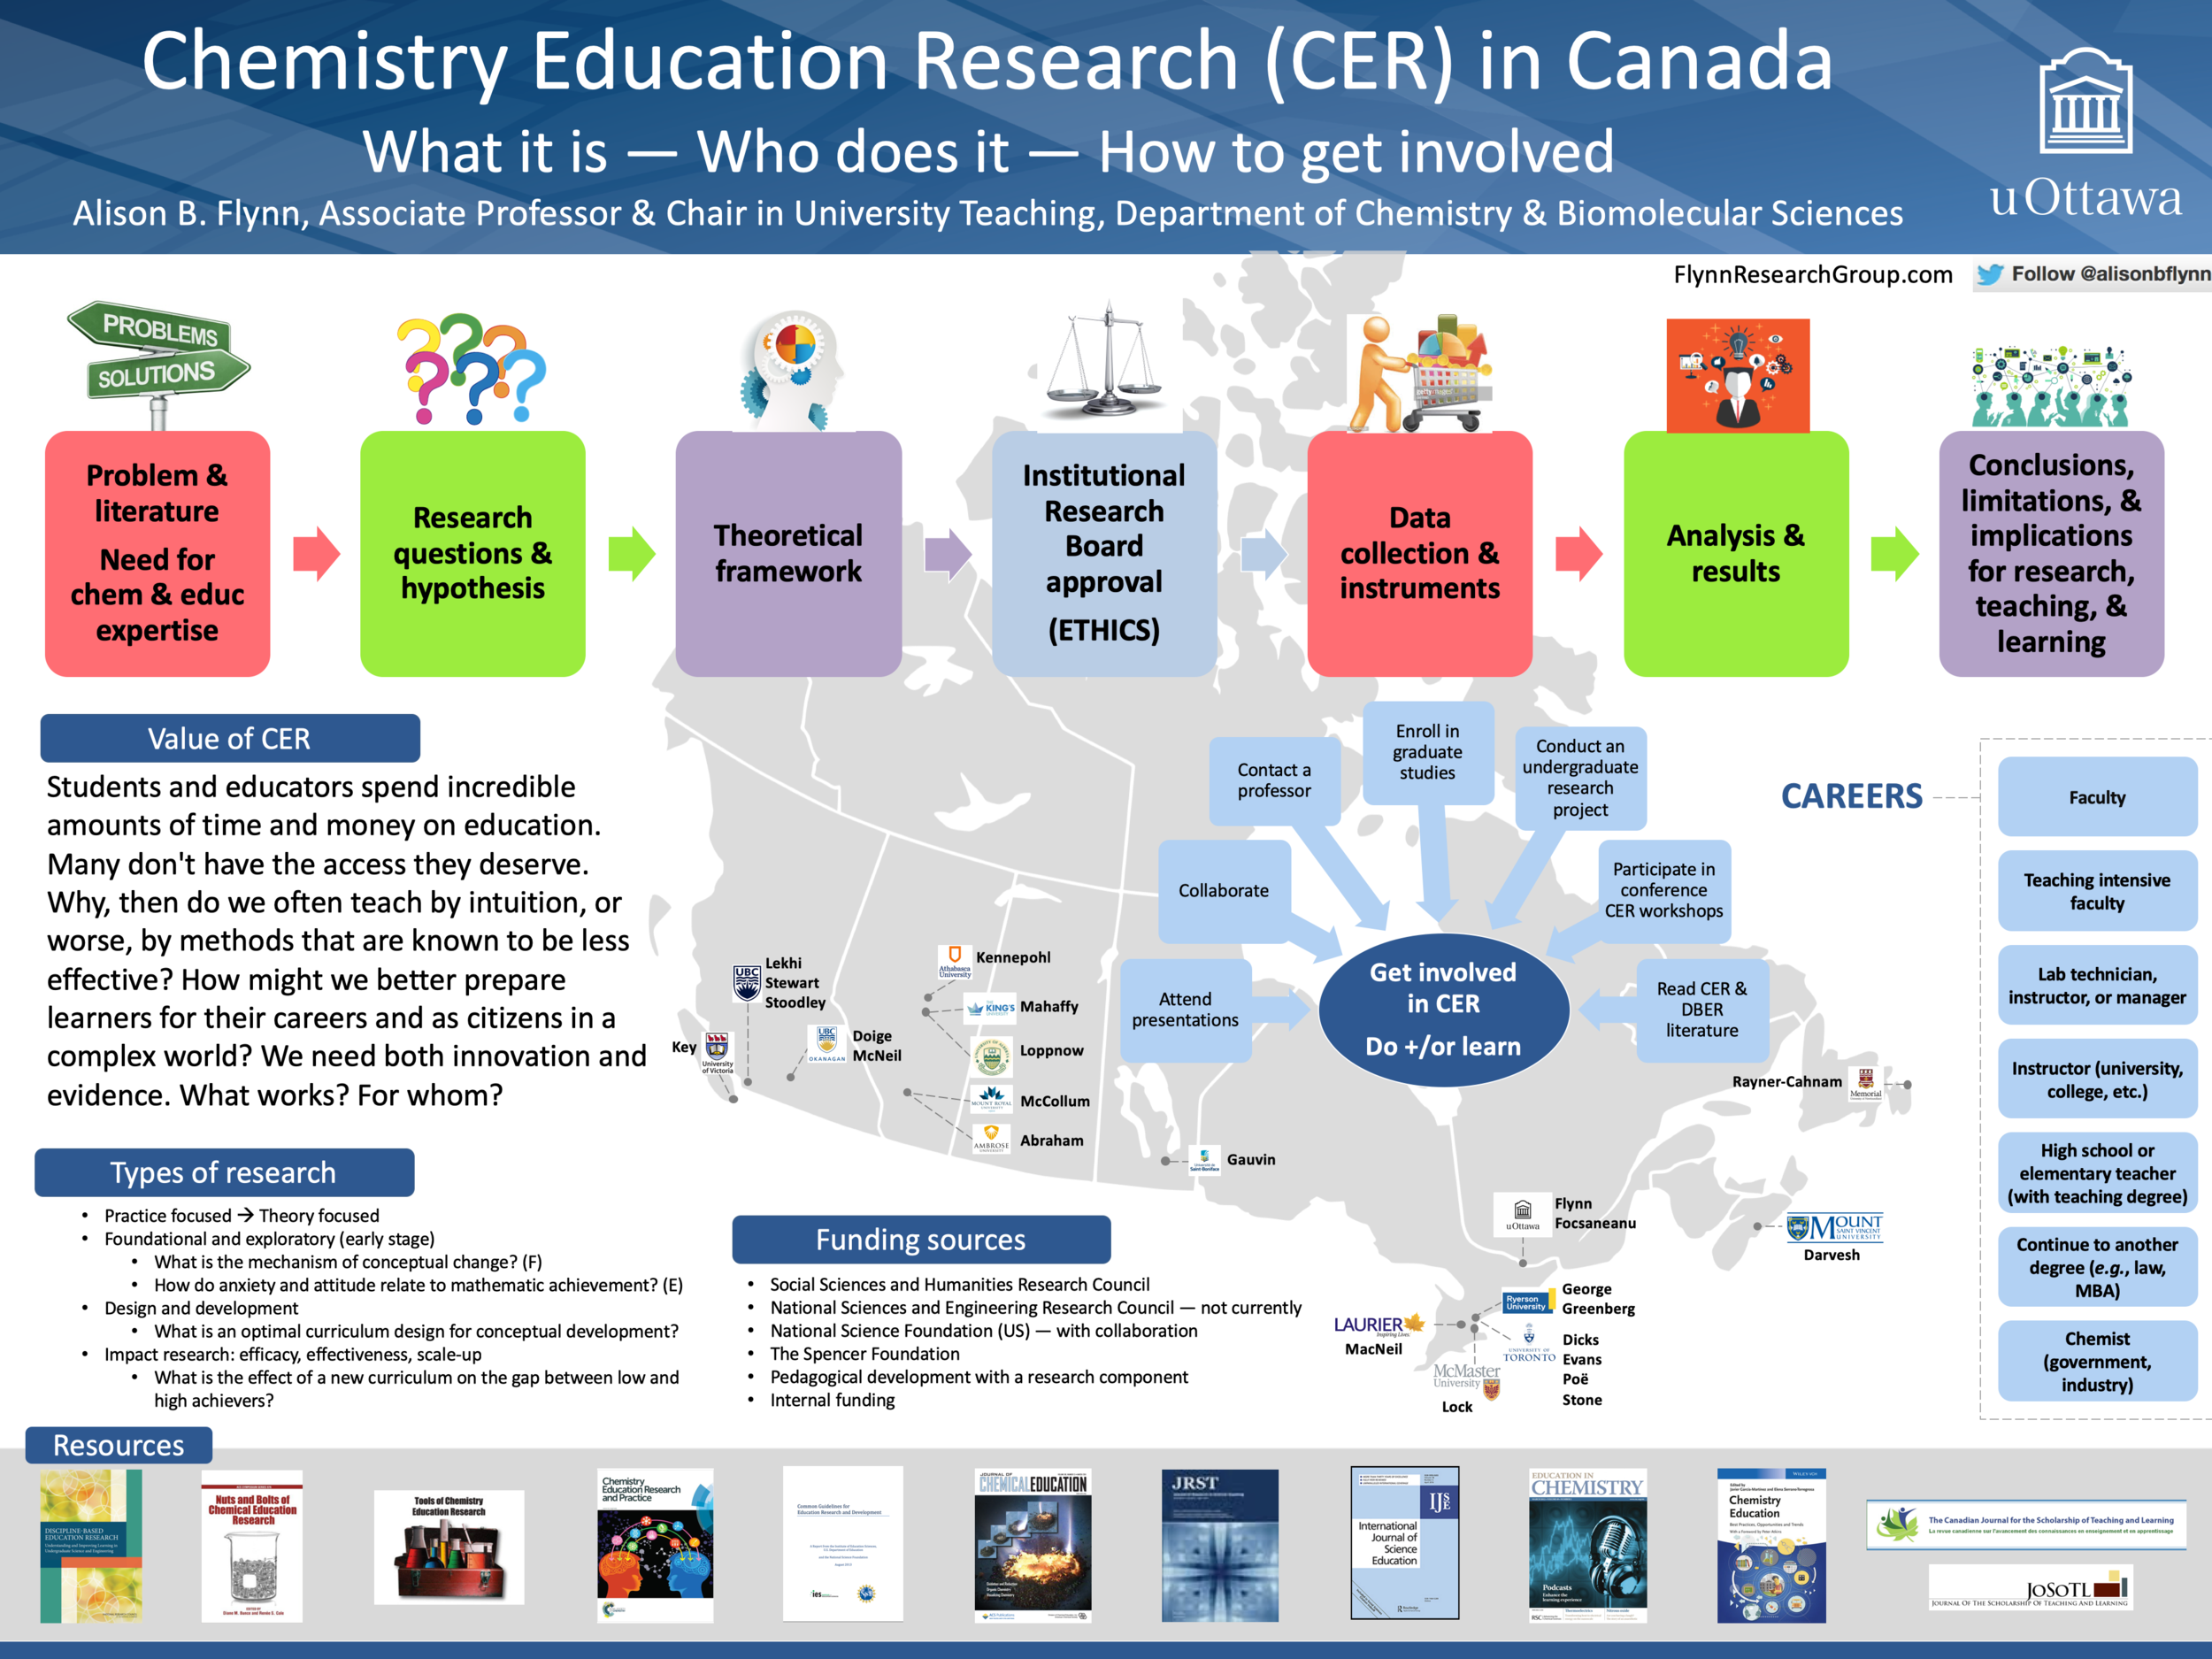 Chemistry Education Research in Canada. Alison Flynn's poster from the Canadian Society for Chemistry conference in Halifax, 2016. Please  contact her  with additions or suggestions.